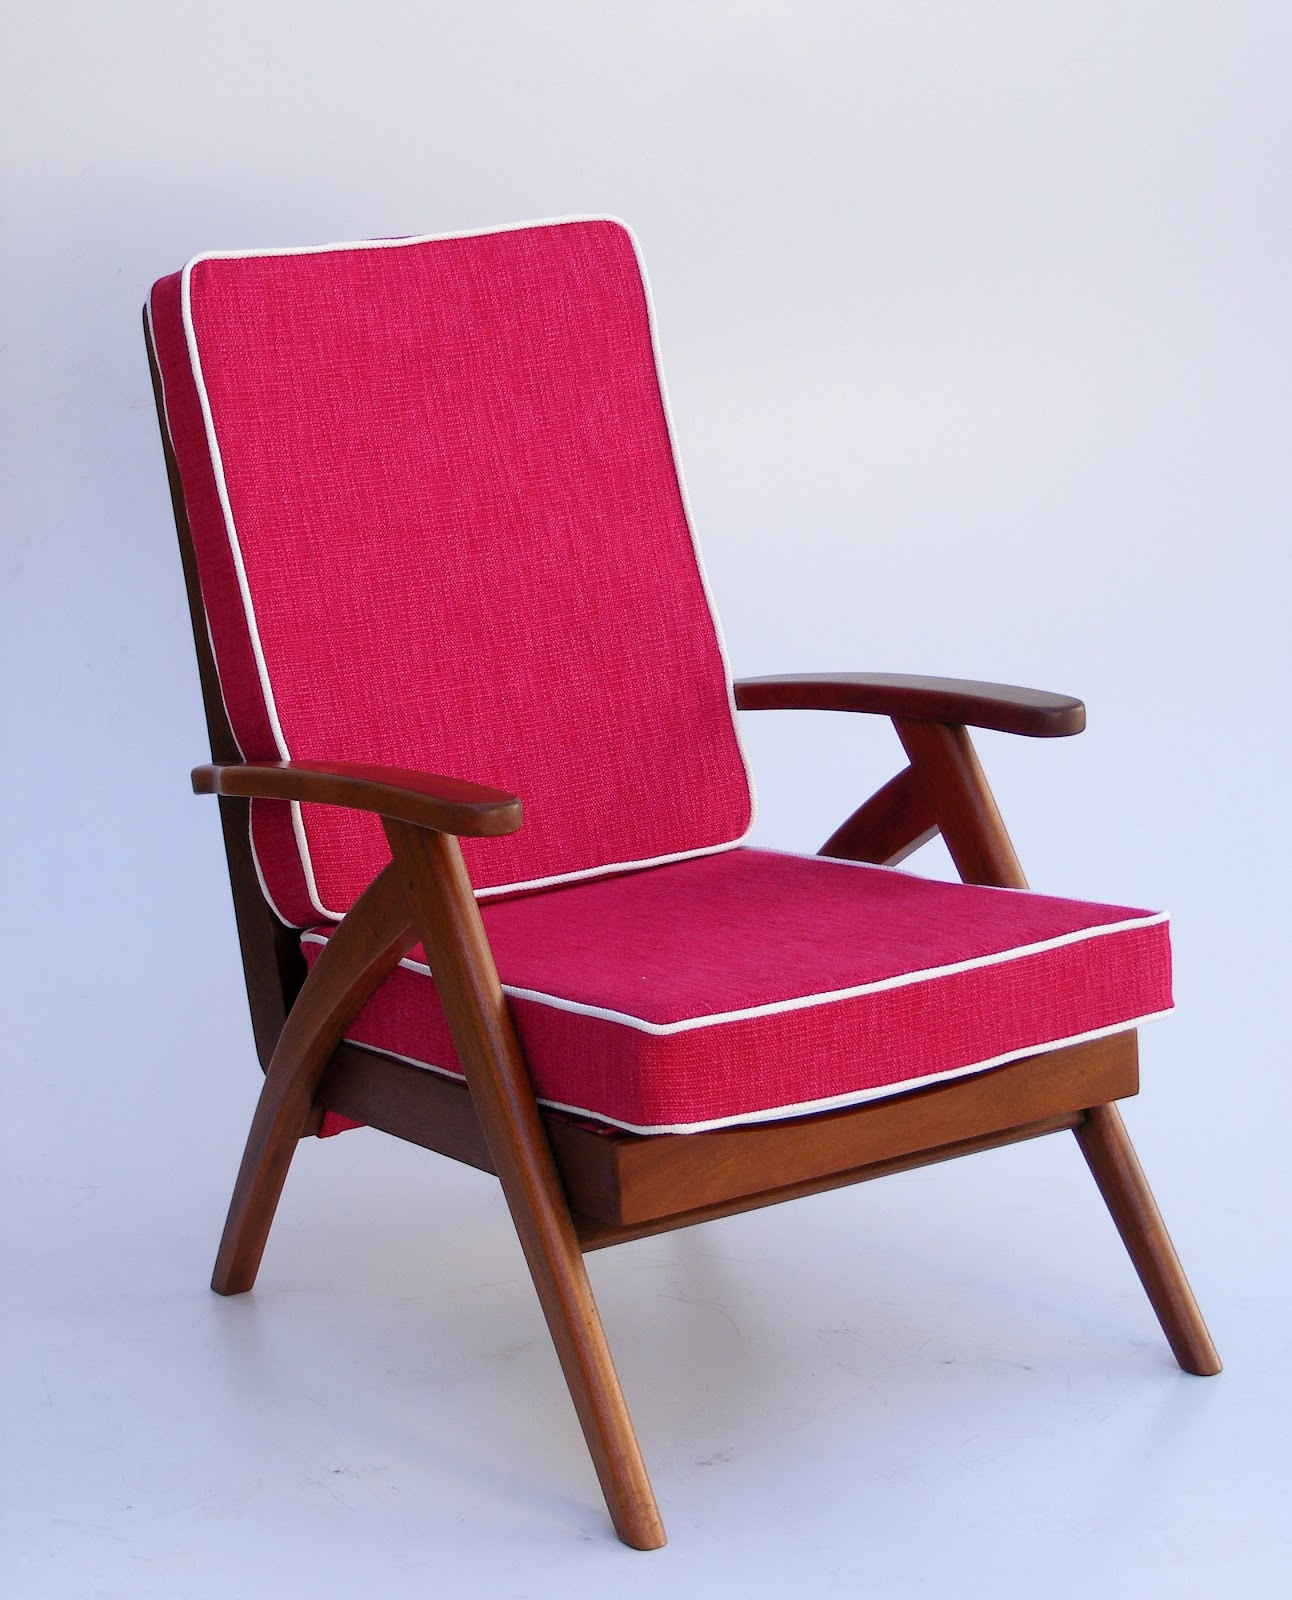 Hot Pink Office Chair Vamp Furniture This Weeks New Vintage Furniture Stock At